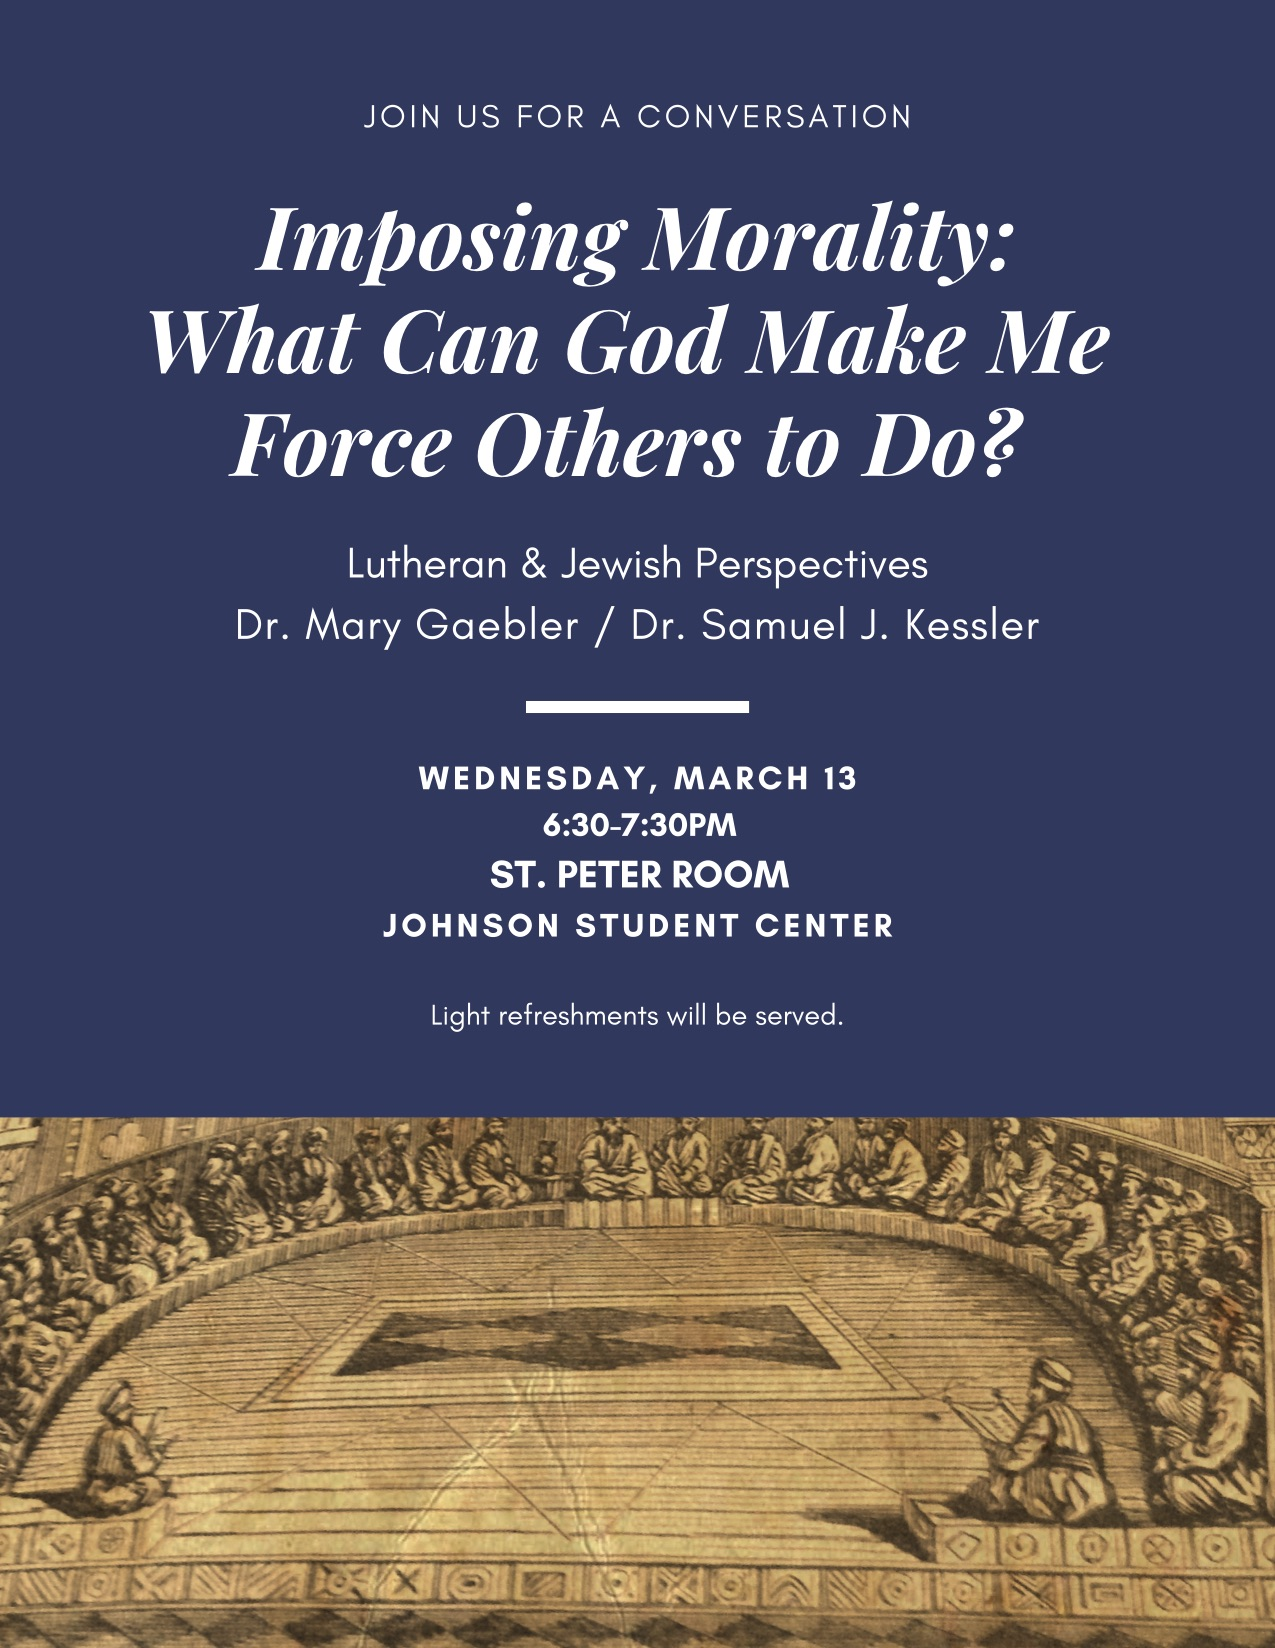 Imposing Morality_March 13, 2019_Gustavus Adolphus College.jpg